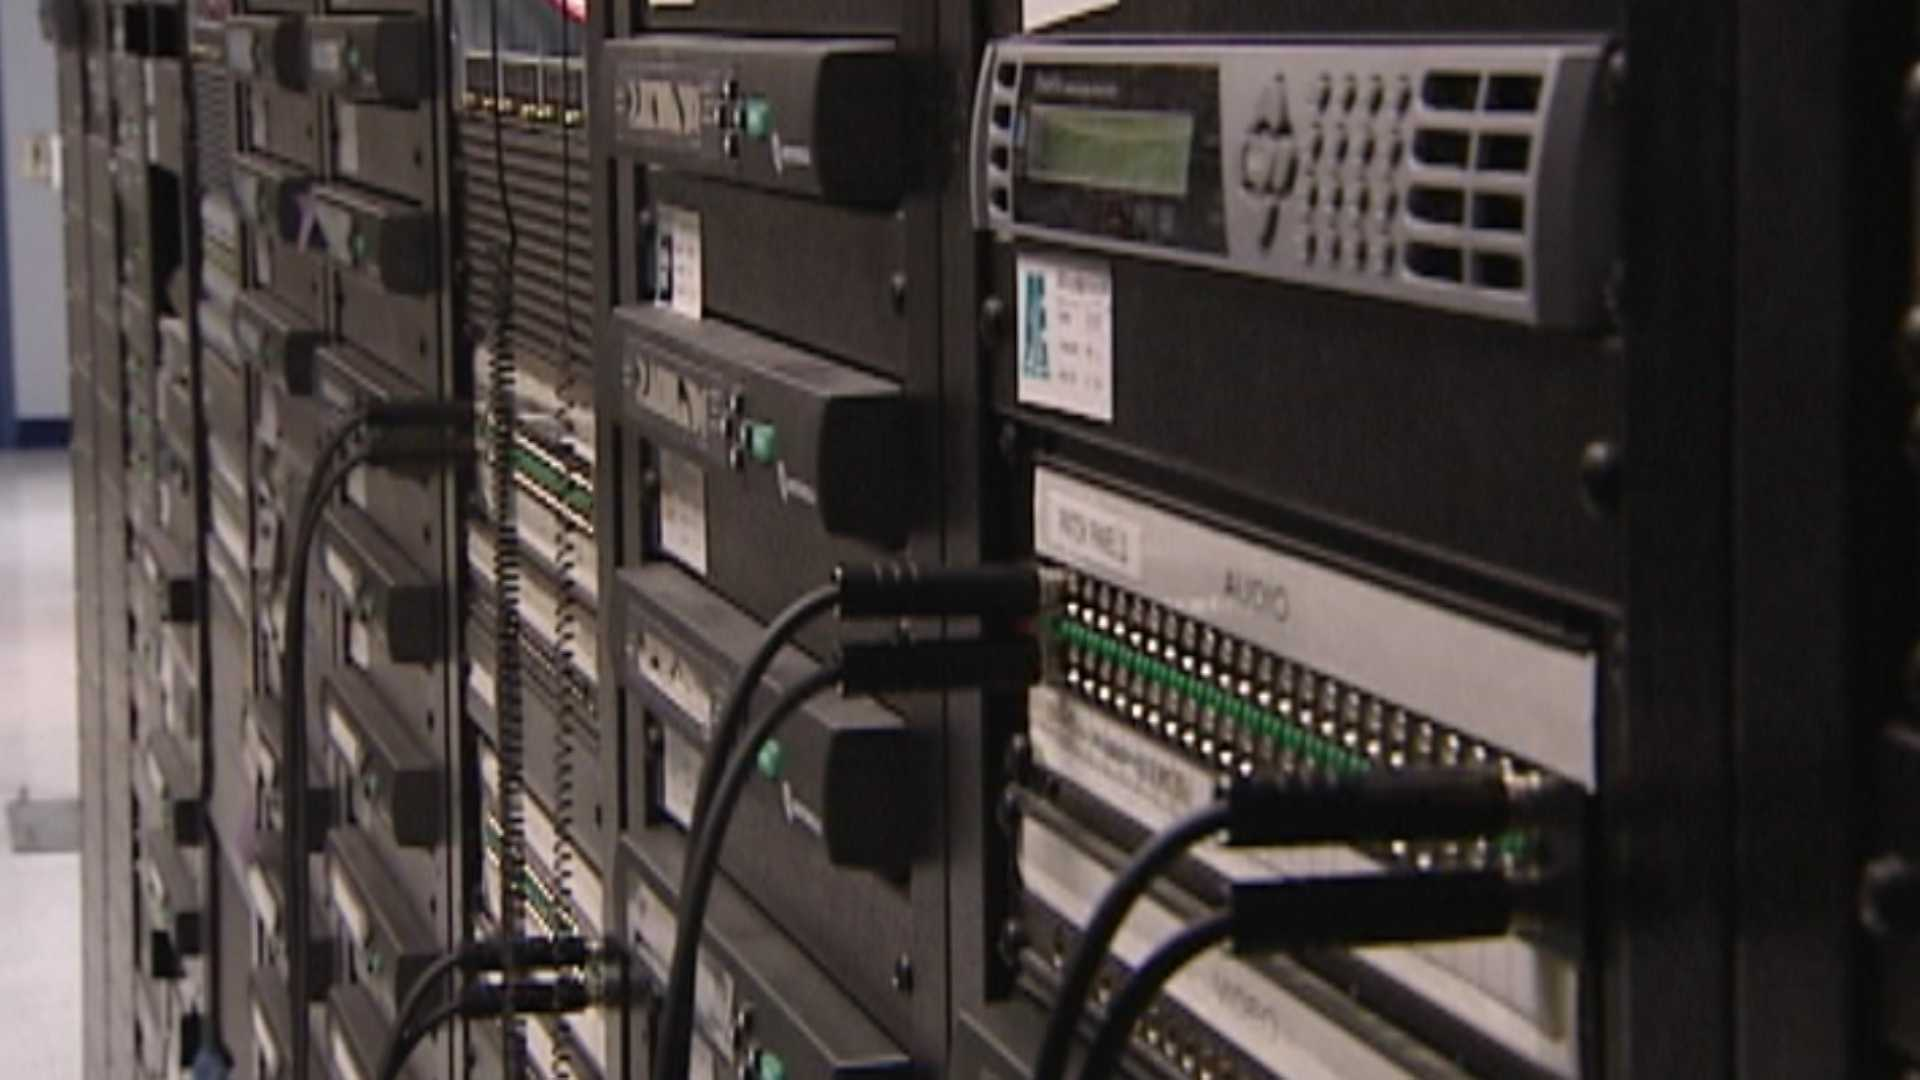 04-04-13 Keep BT Local aims to buy city cable company - img